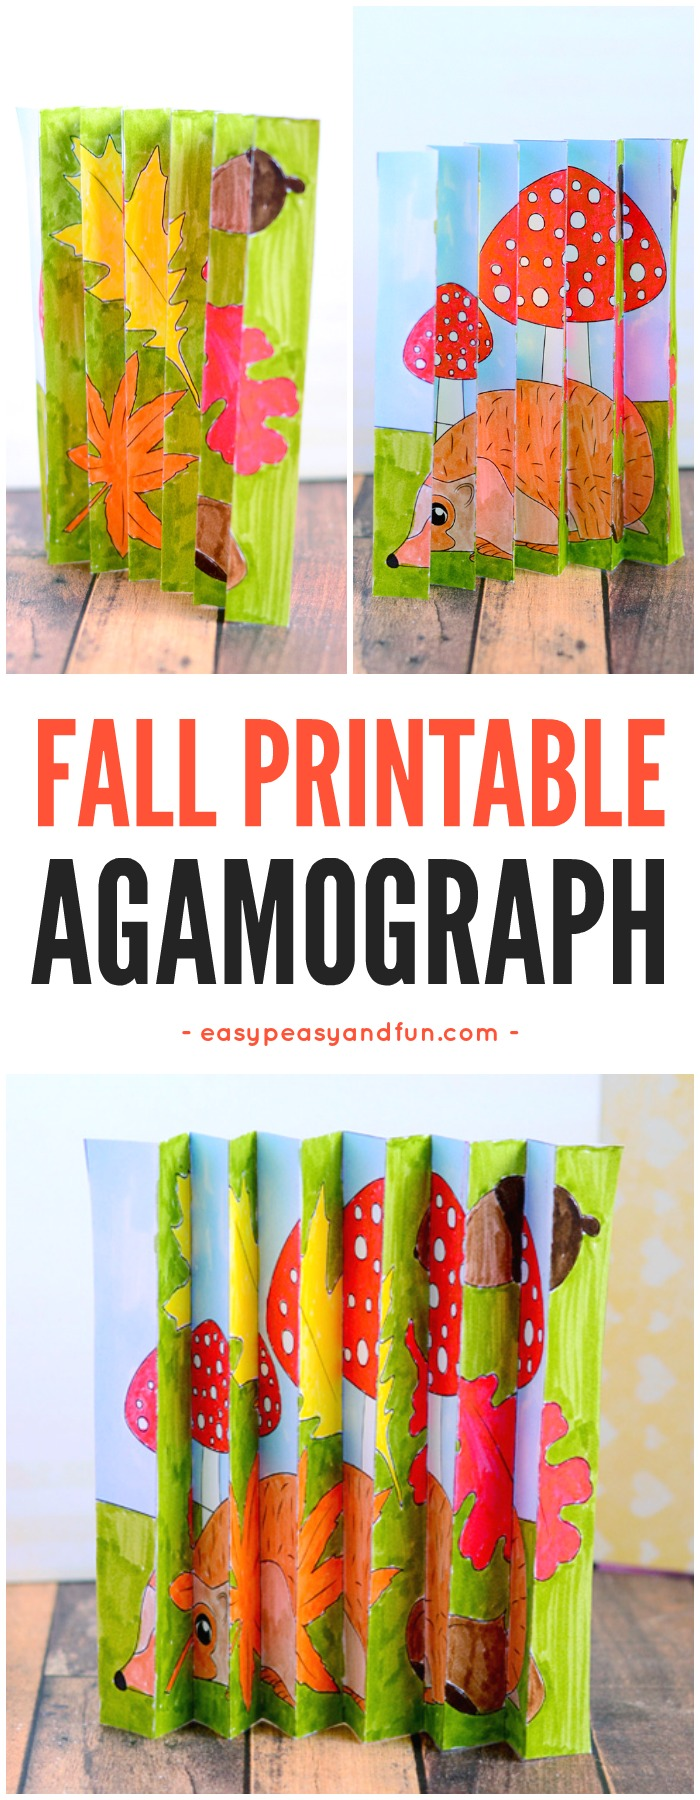 fall agamograph template for kids easy peasy and fun